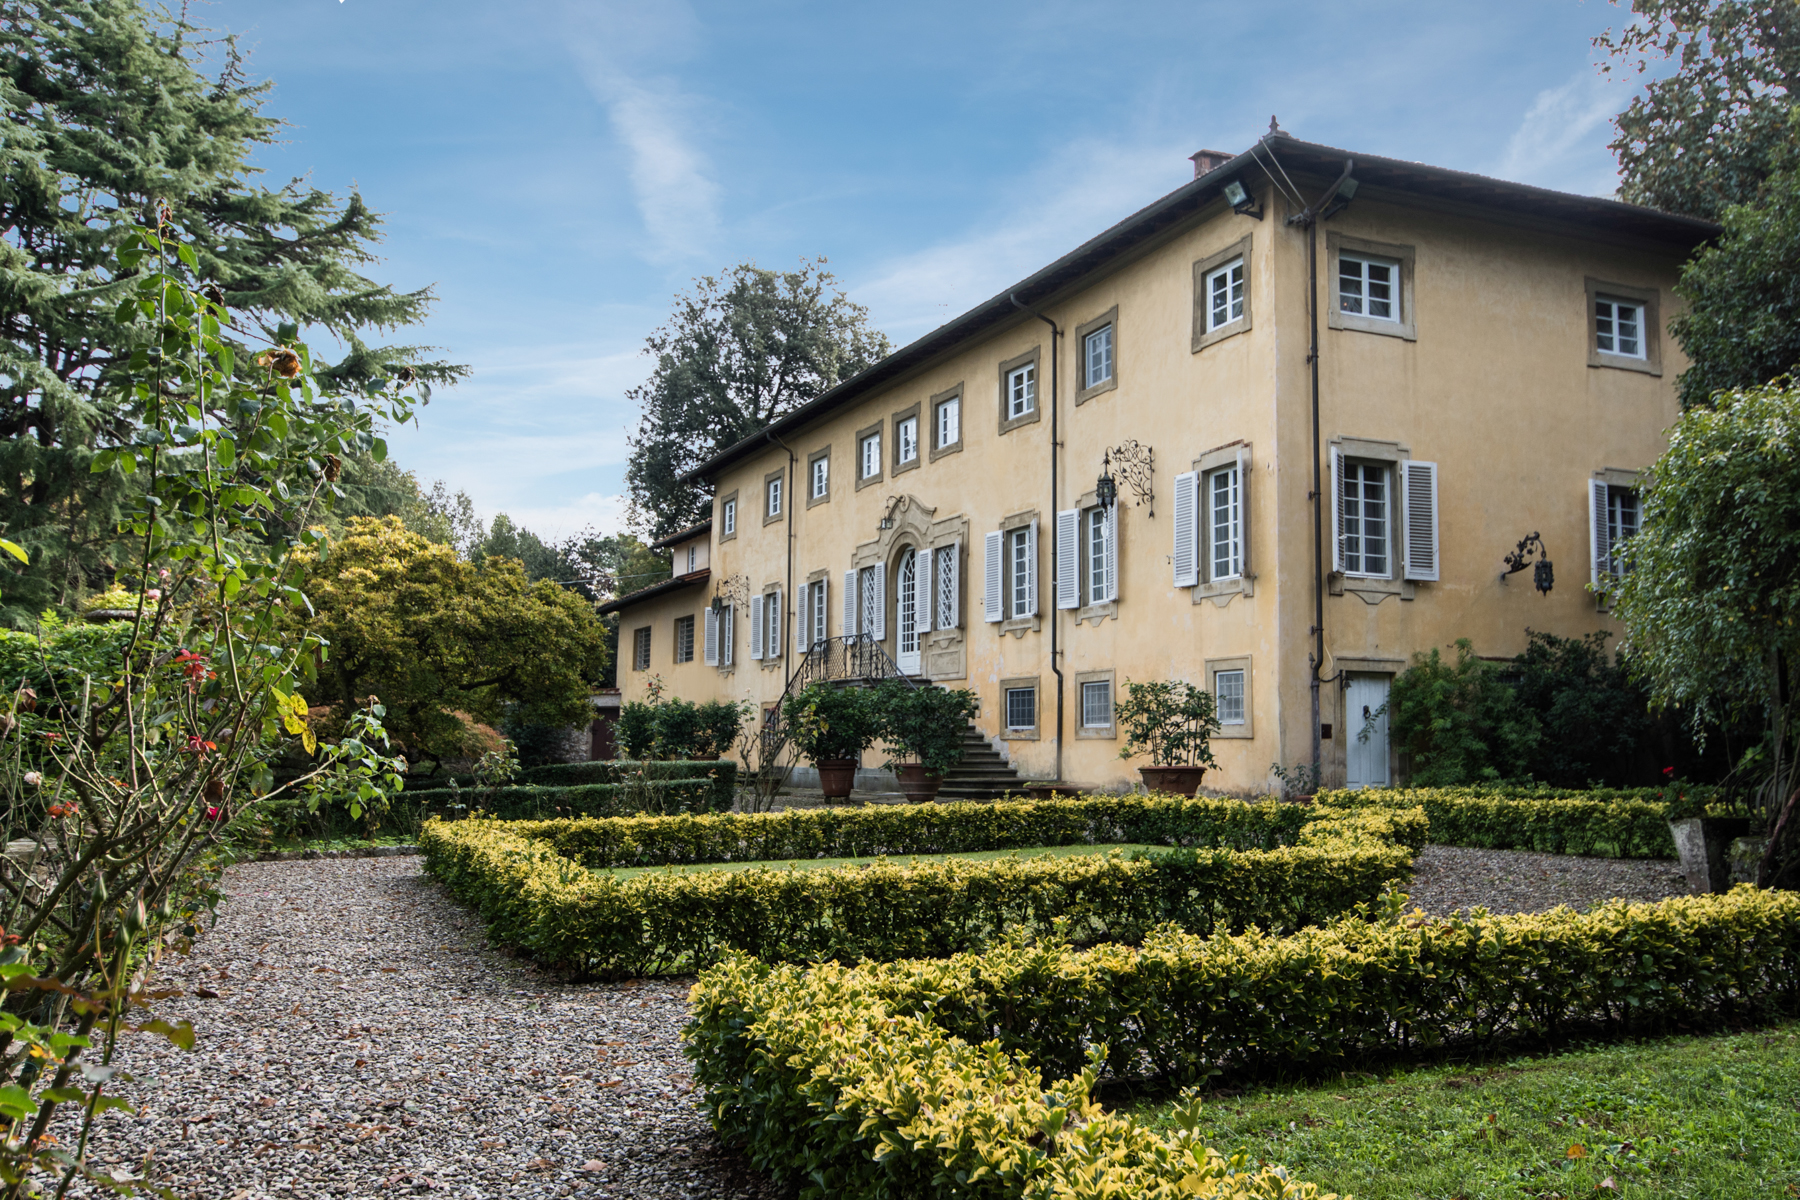 Single Family Home for Sale at Charming 18th century villa in Lucca countryside Loc. Montuolo Lucca, 55100 Italy